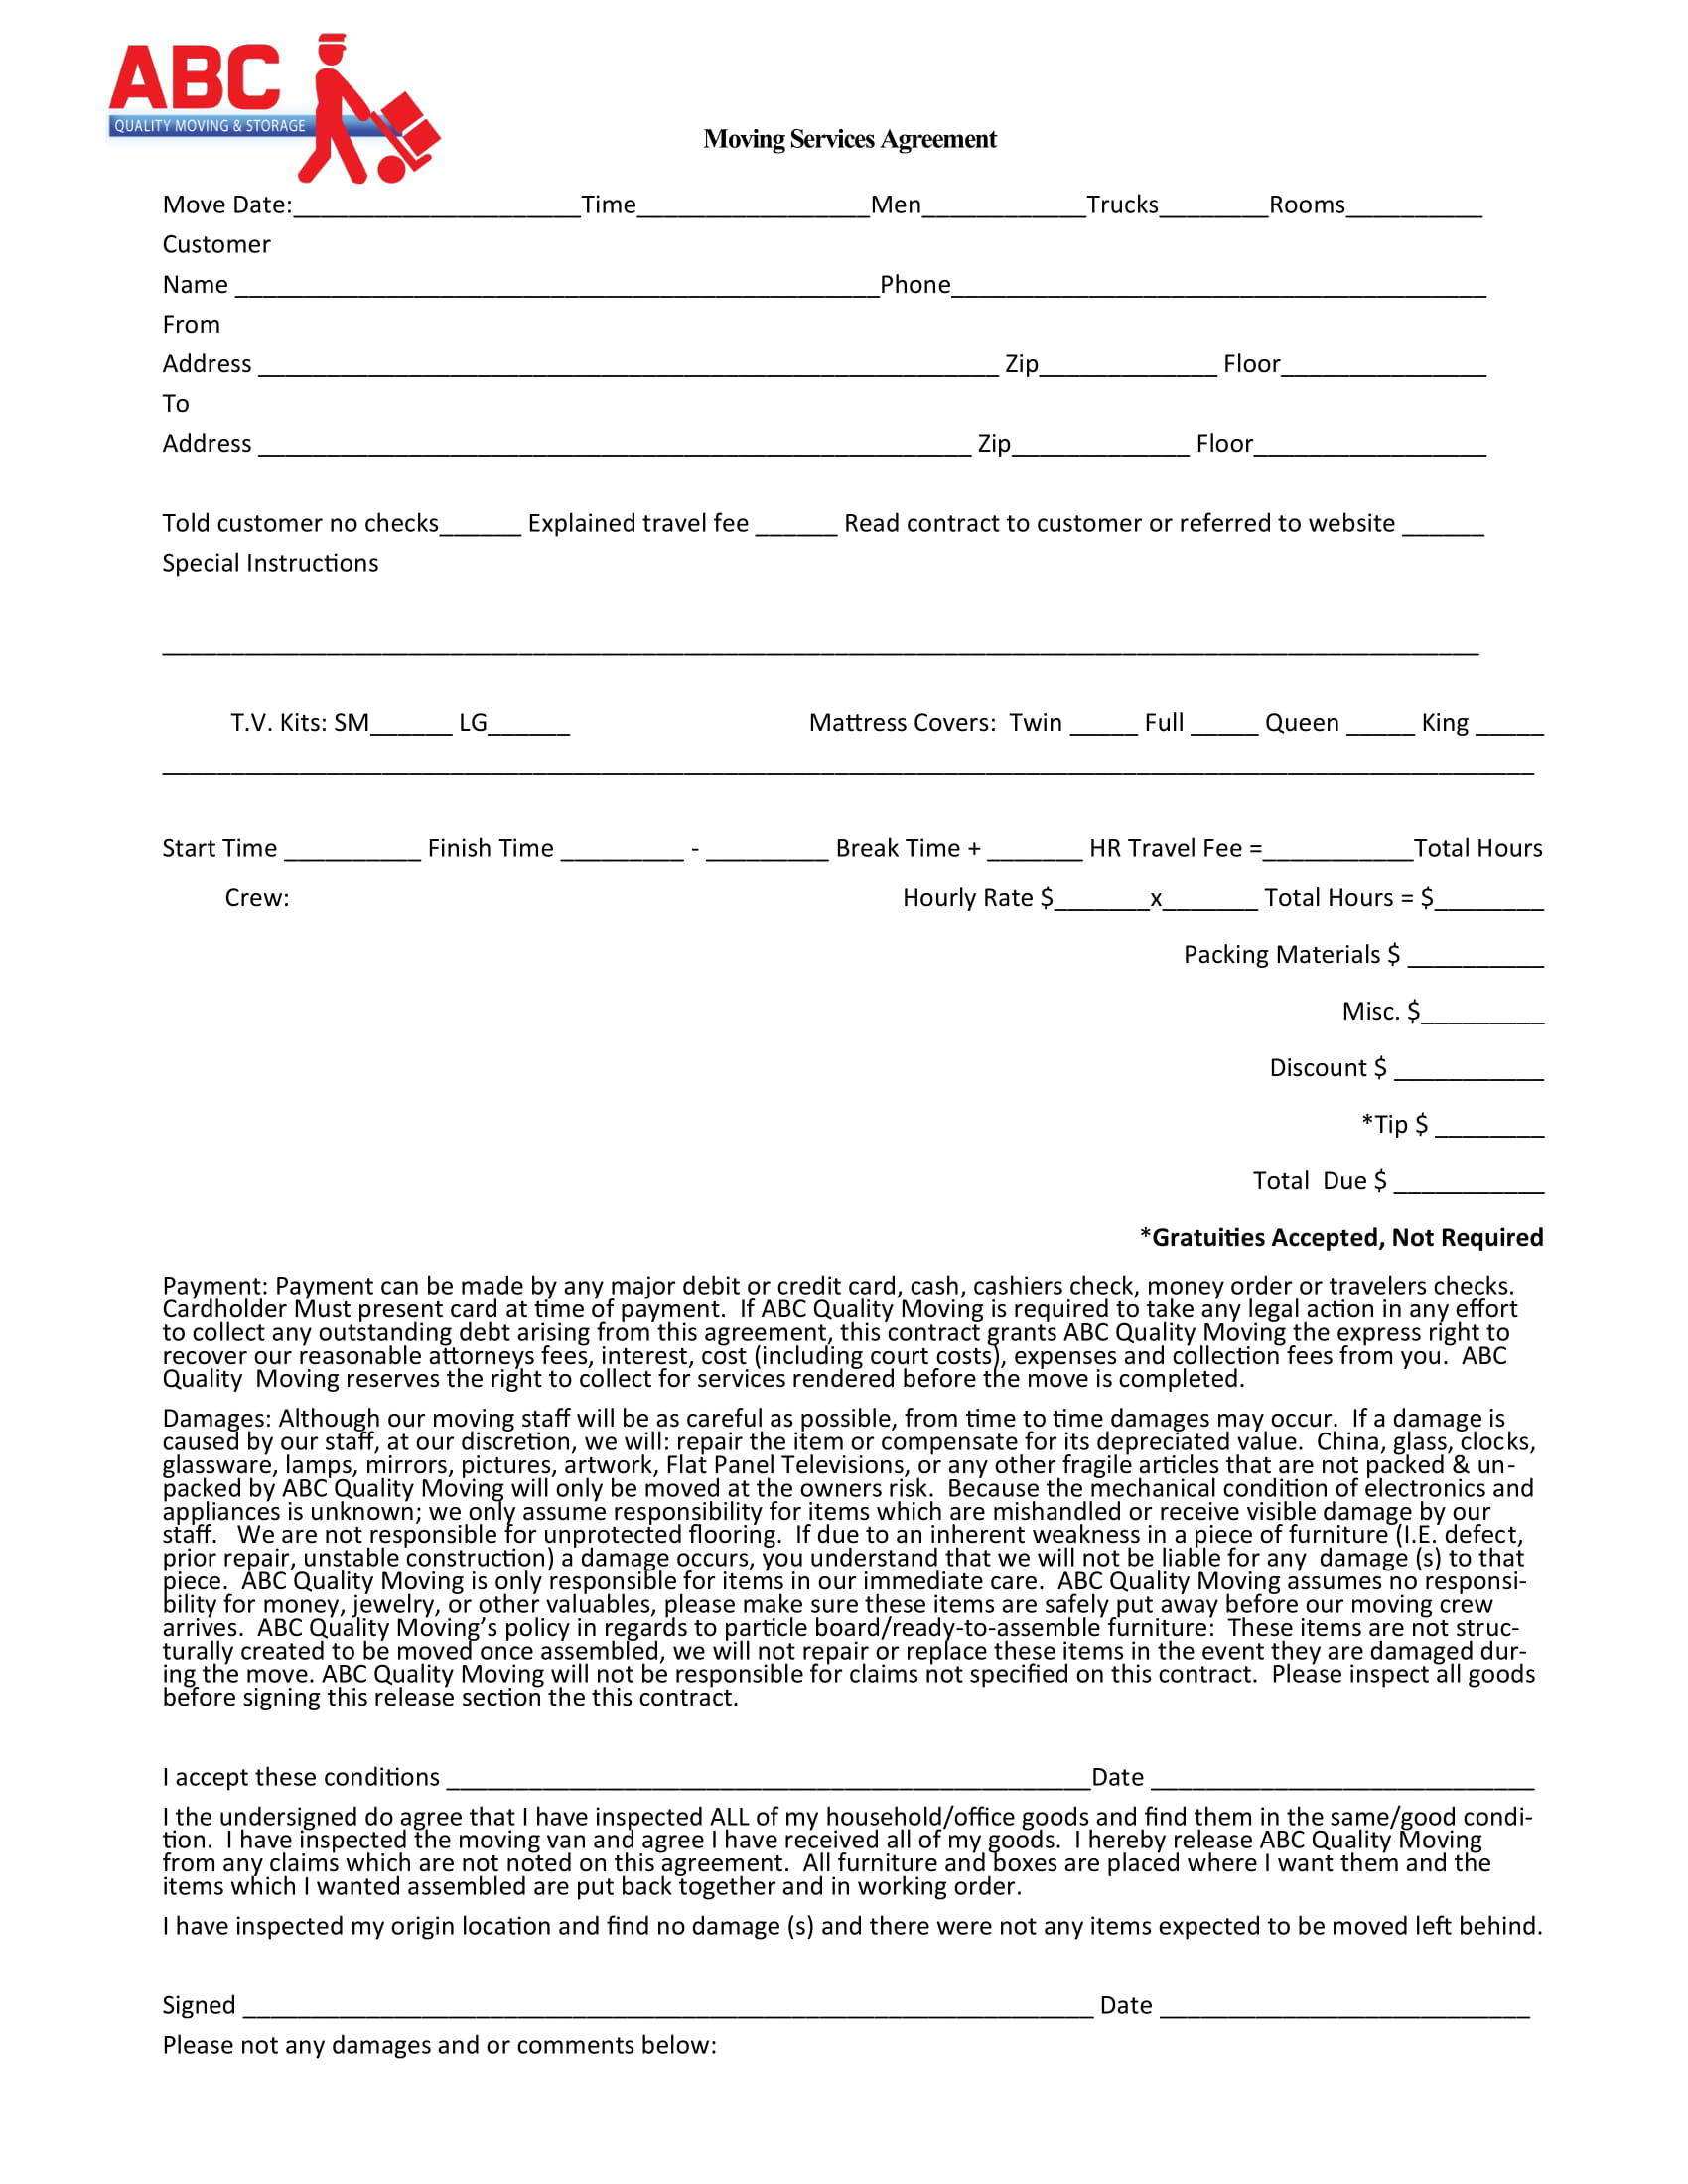 moving services agreement from a moving company example 1